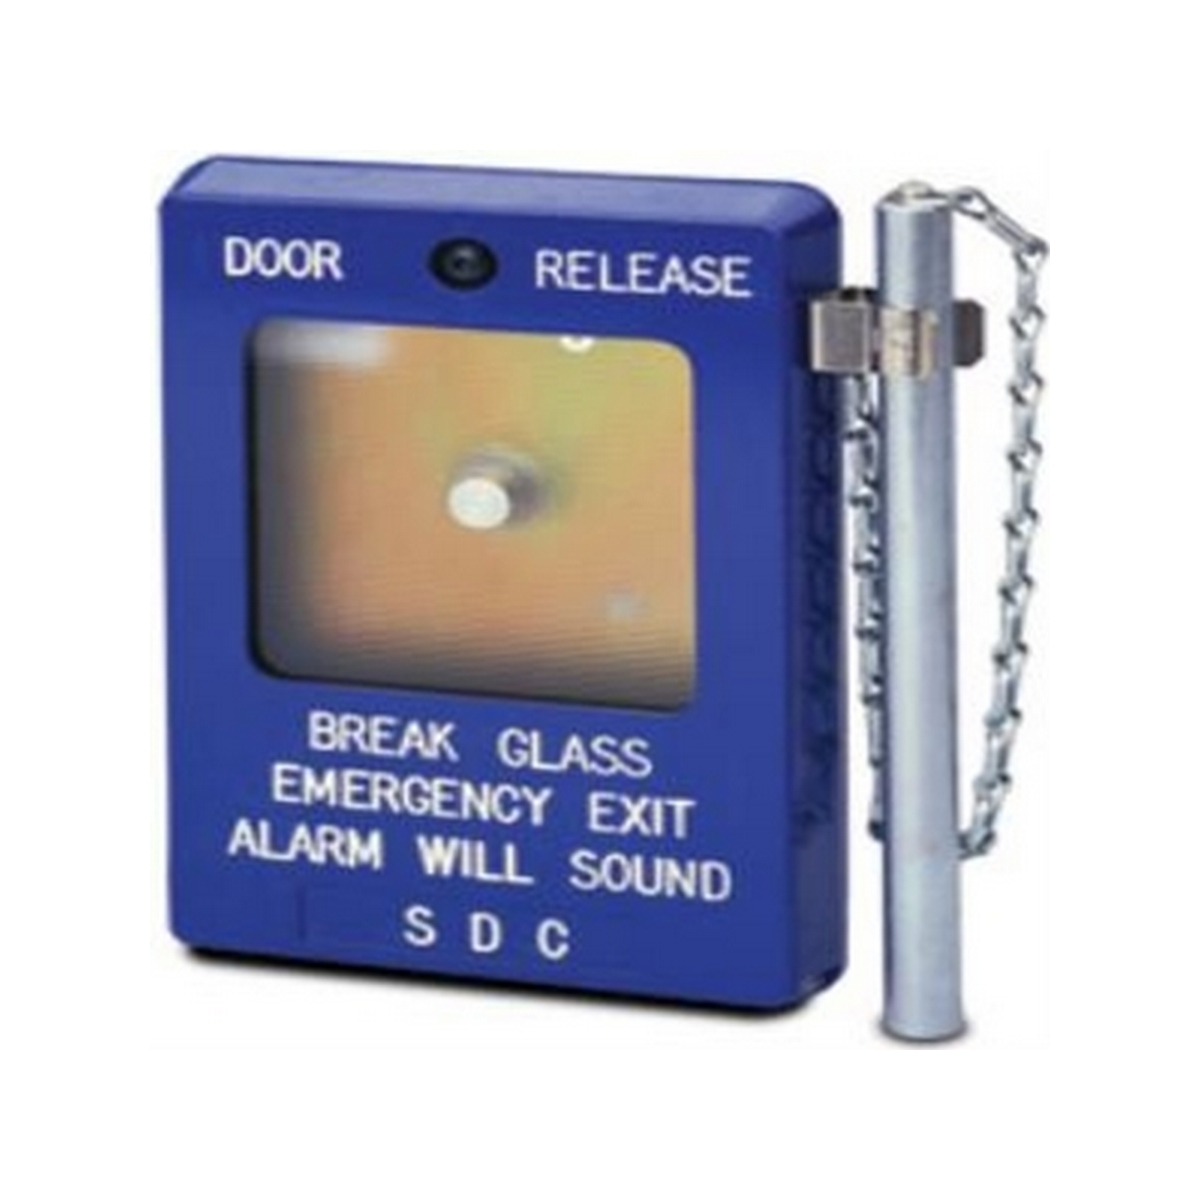 Door release surface mount box